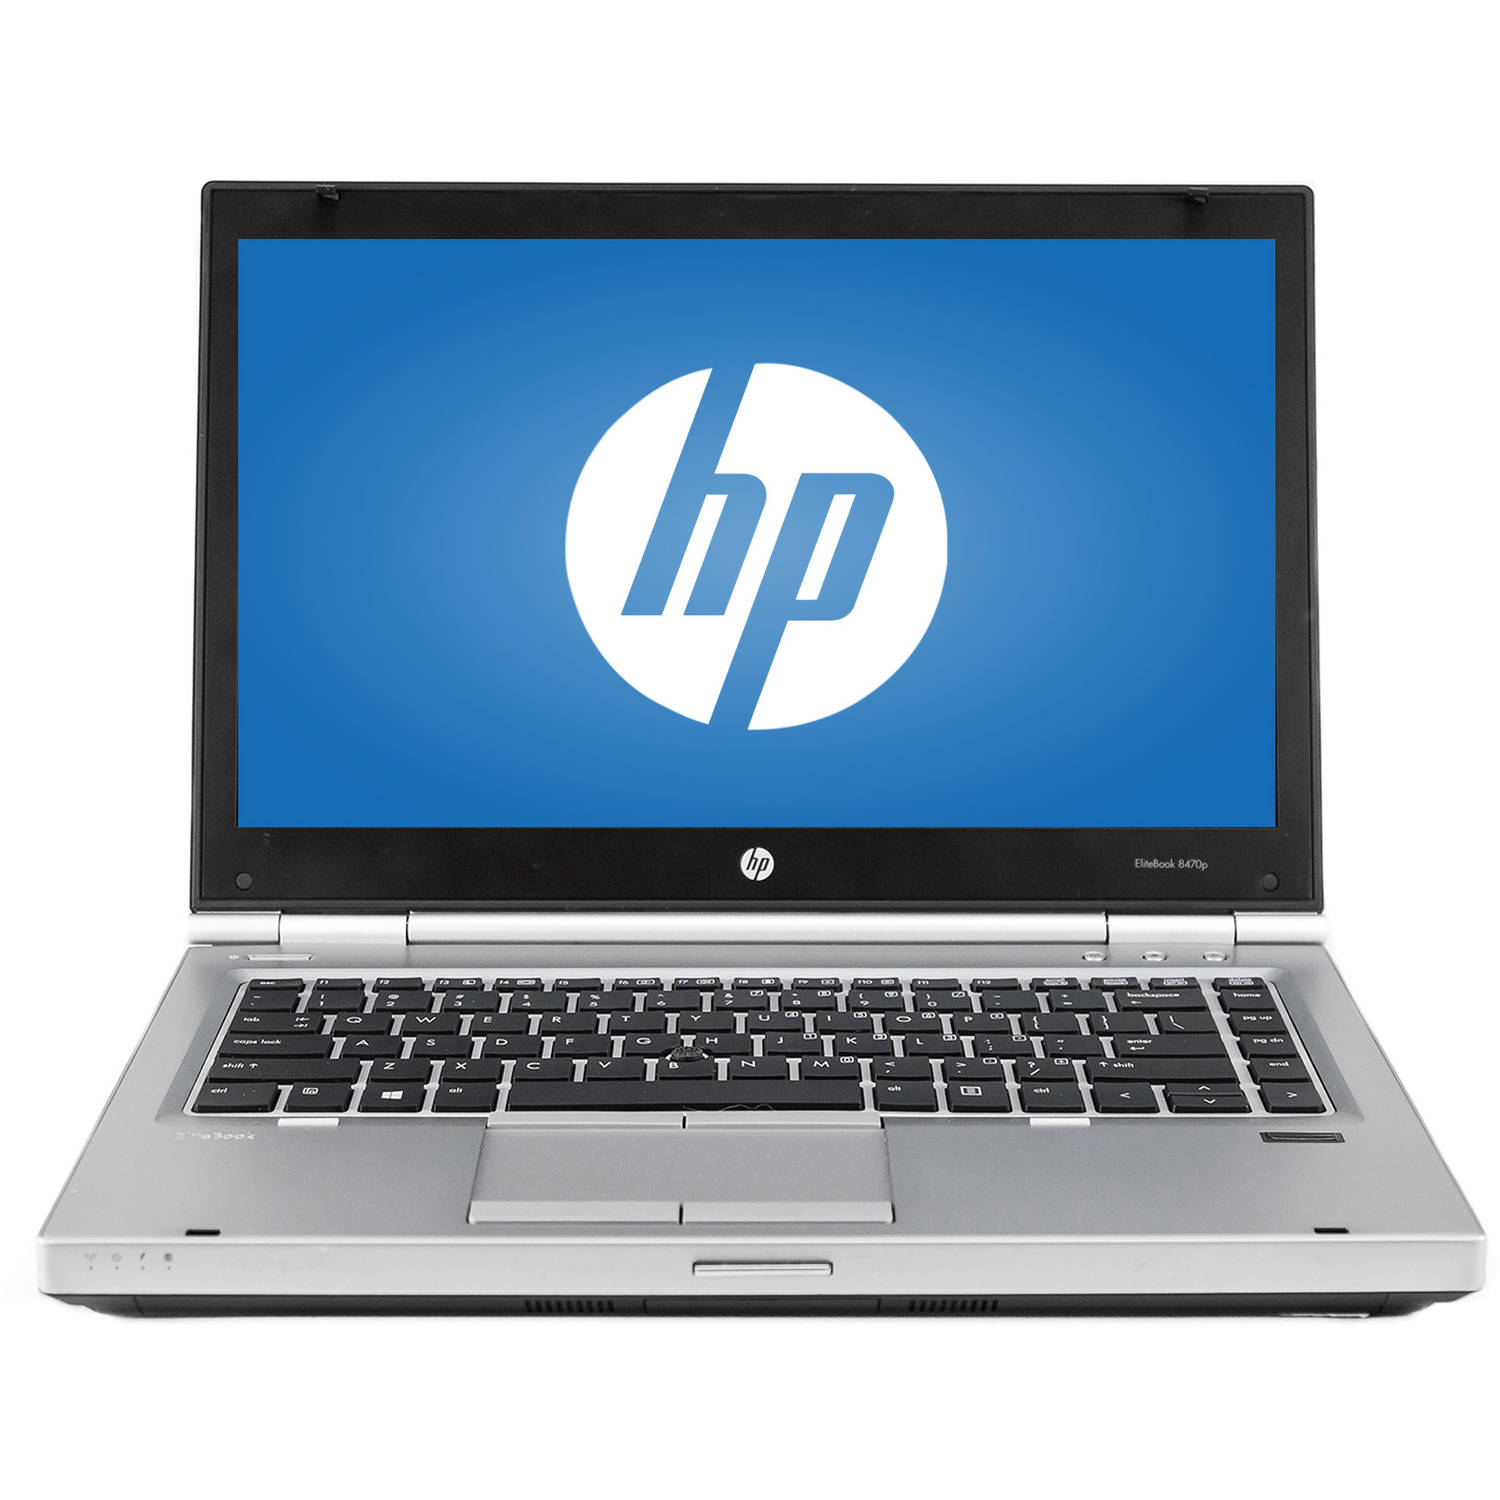 "Refurbished HP Silver 14"" EliteBook 8470P WA5-1062 Laptop PC with Intel Core i5-3320M Processor, 8GB Memory, 128GB Solid State Drive and Windows 10 Home"